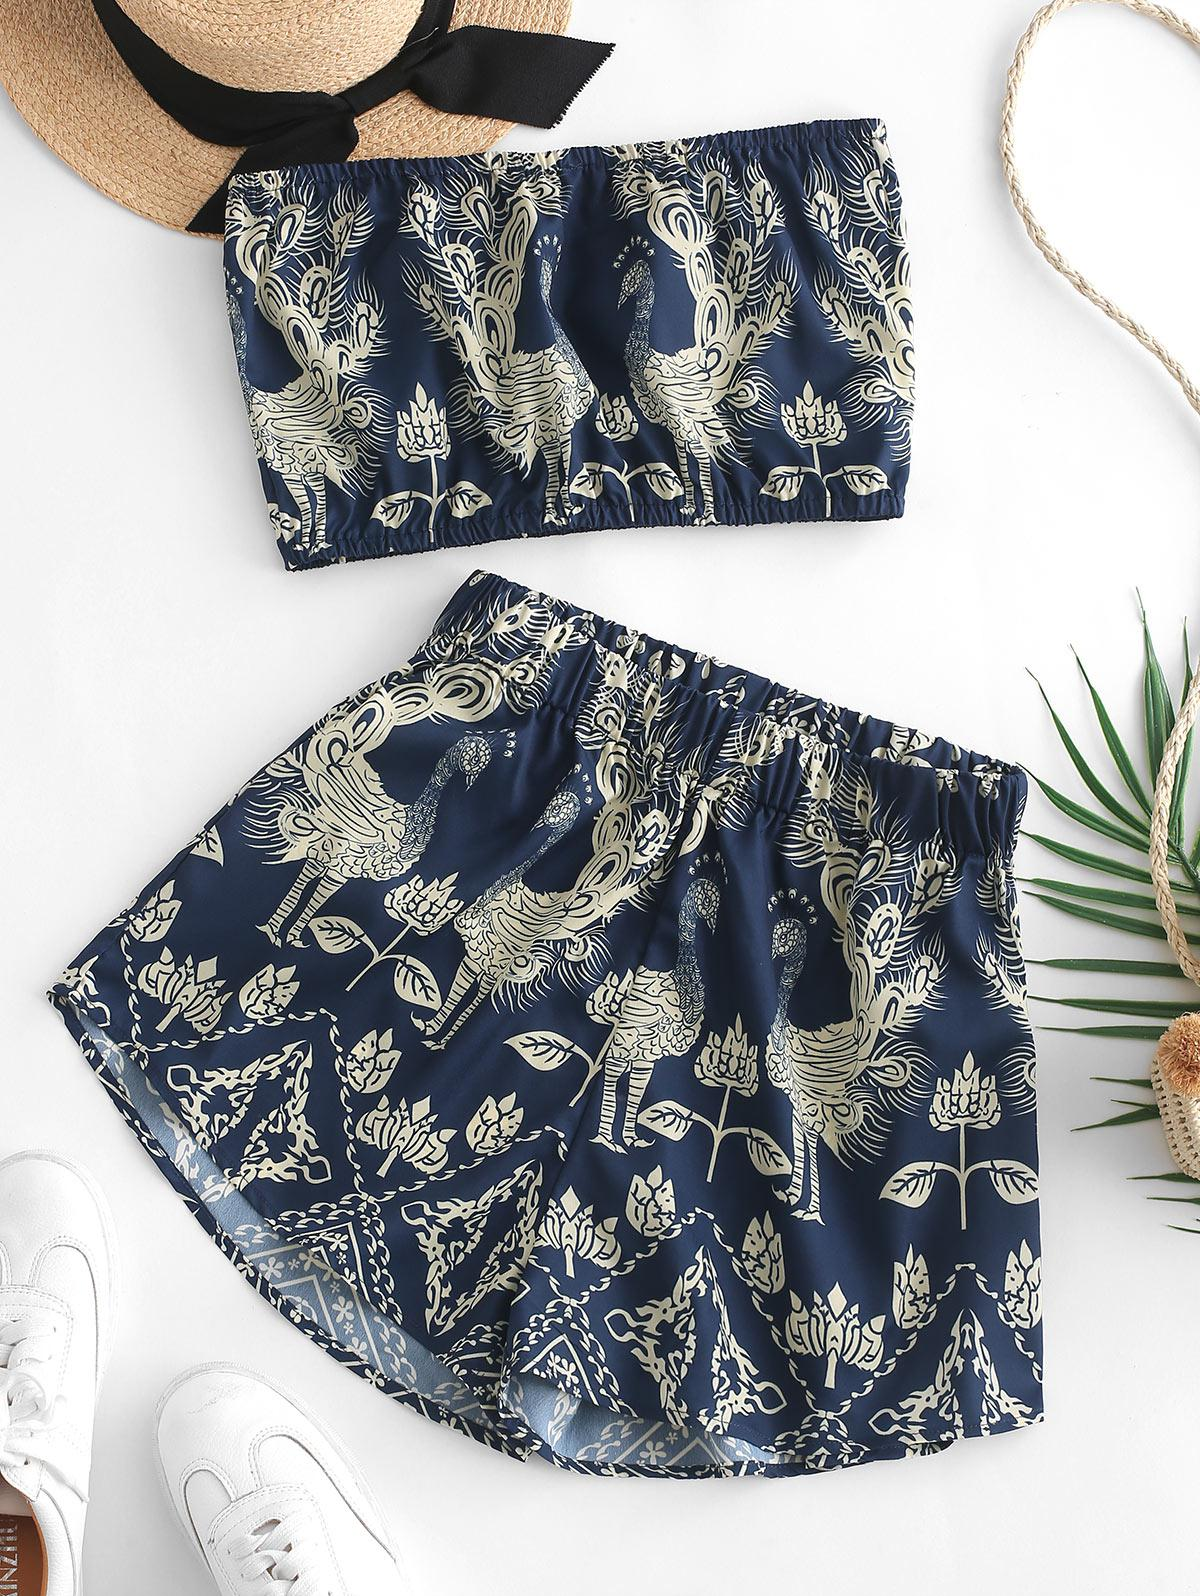 ZAFUL Peacock Printed Bandeau Top And Shorts Set, Midnight blue